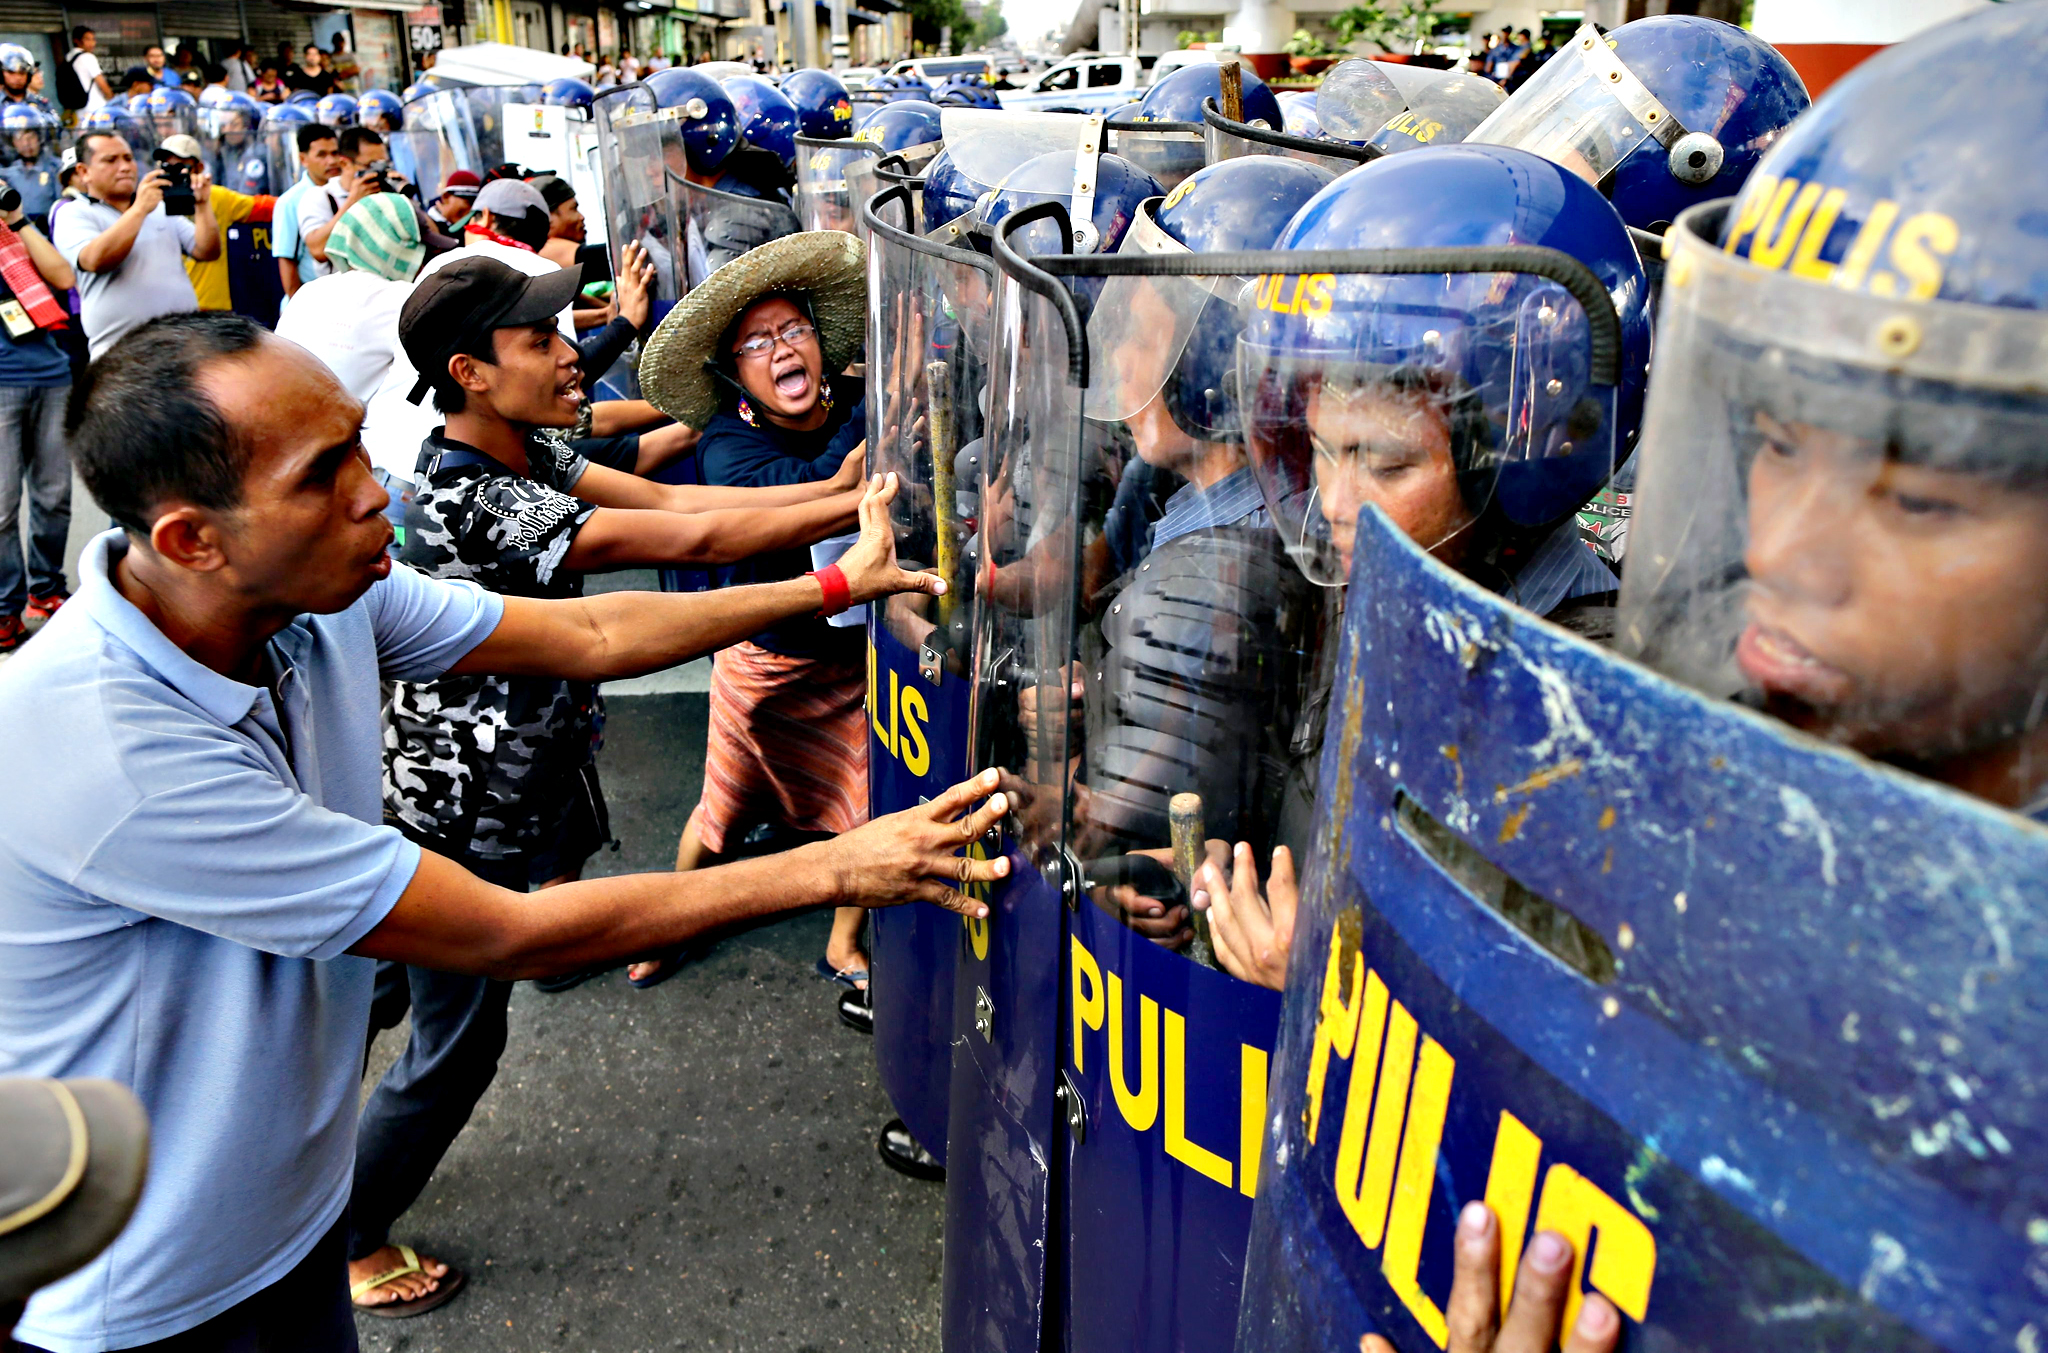 Filipino activists scuffle  with anti-riot police during a protest rally against the Asia-Pacific Economic Cooperation (APEC) in Manila, Philippines, 16 November 2015. According to the statement of the protesters, they blamed the APEC on the collapse of local business, low wages and environmental degradation. The Philippines will hosts the summit on 18 and 19 November.